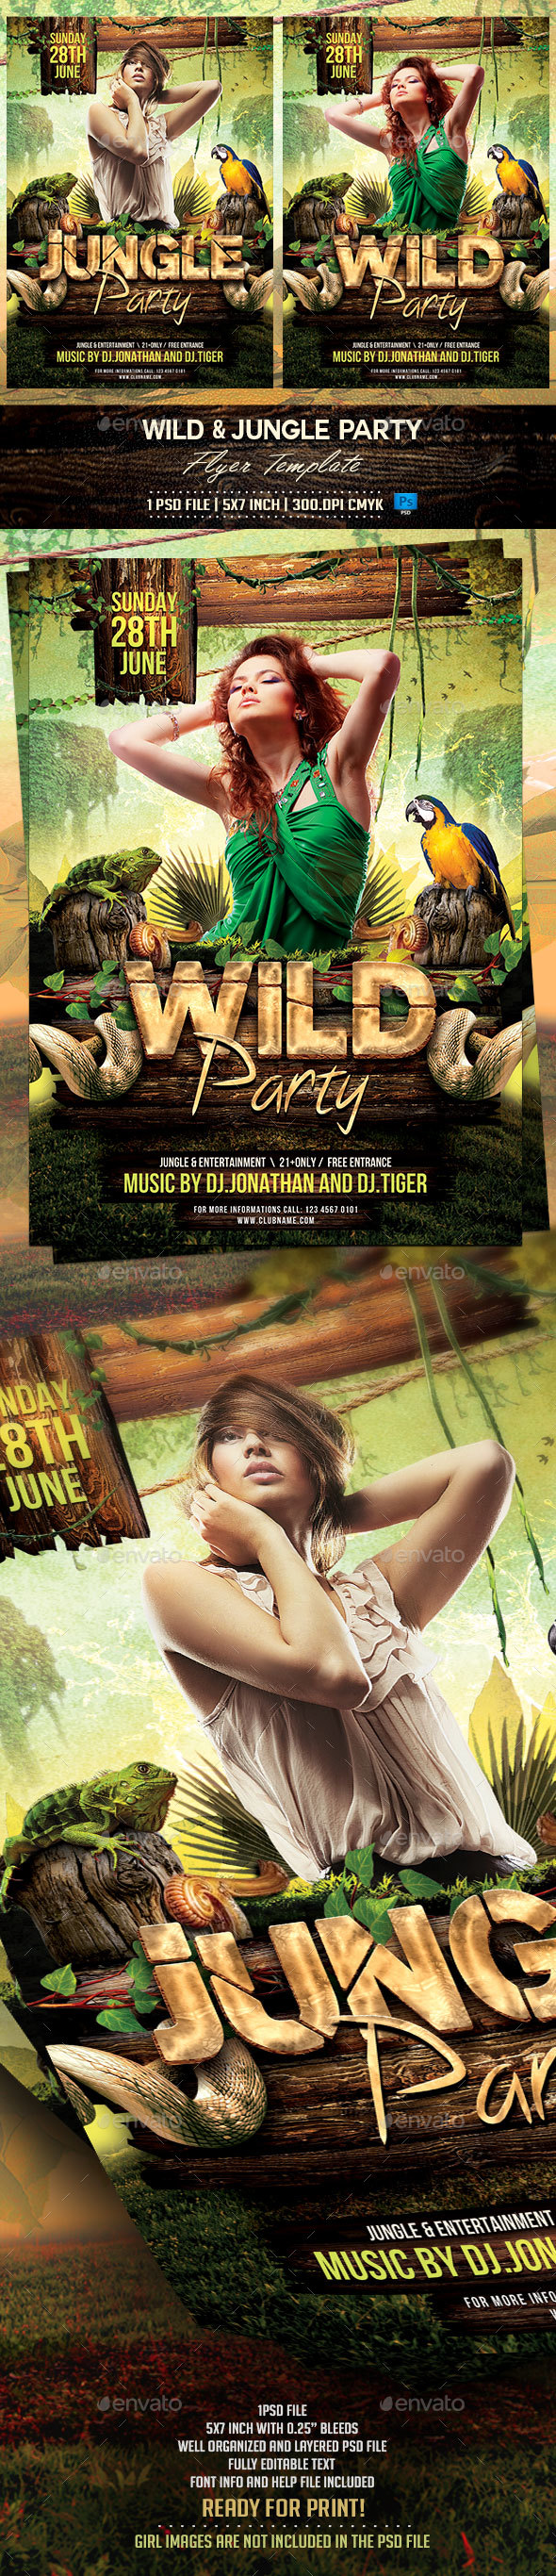 Jungle and Wild Flyer Template - Flyers Print Templates